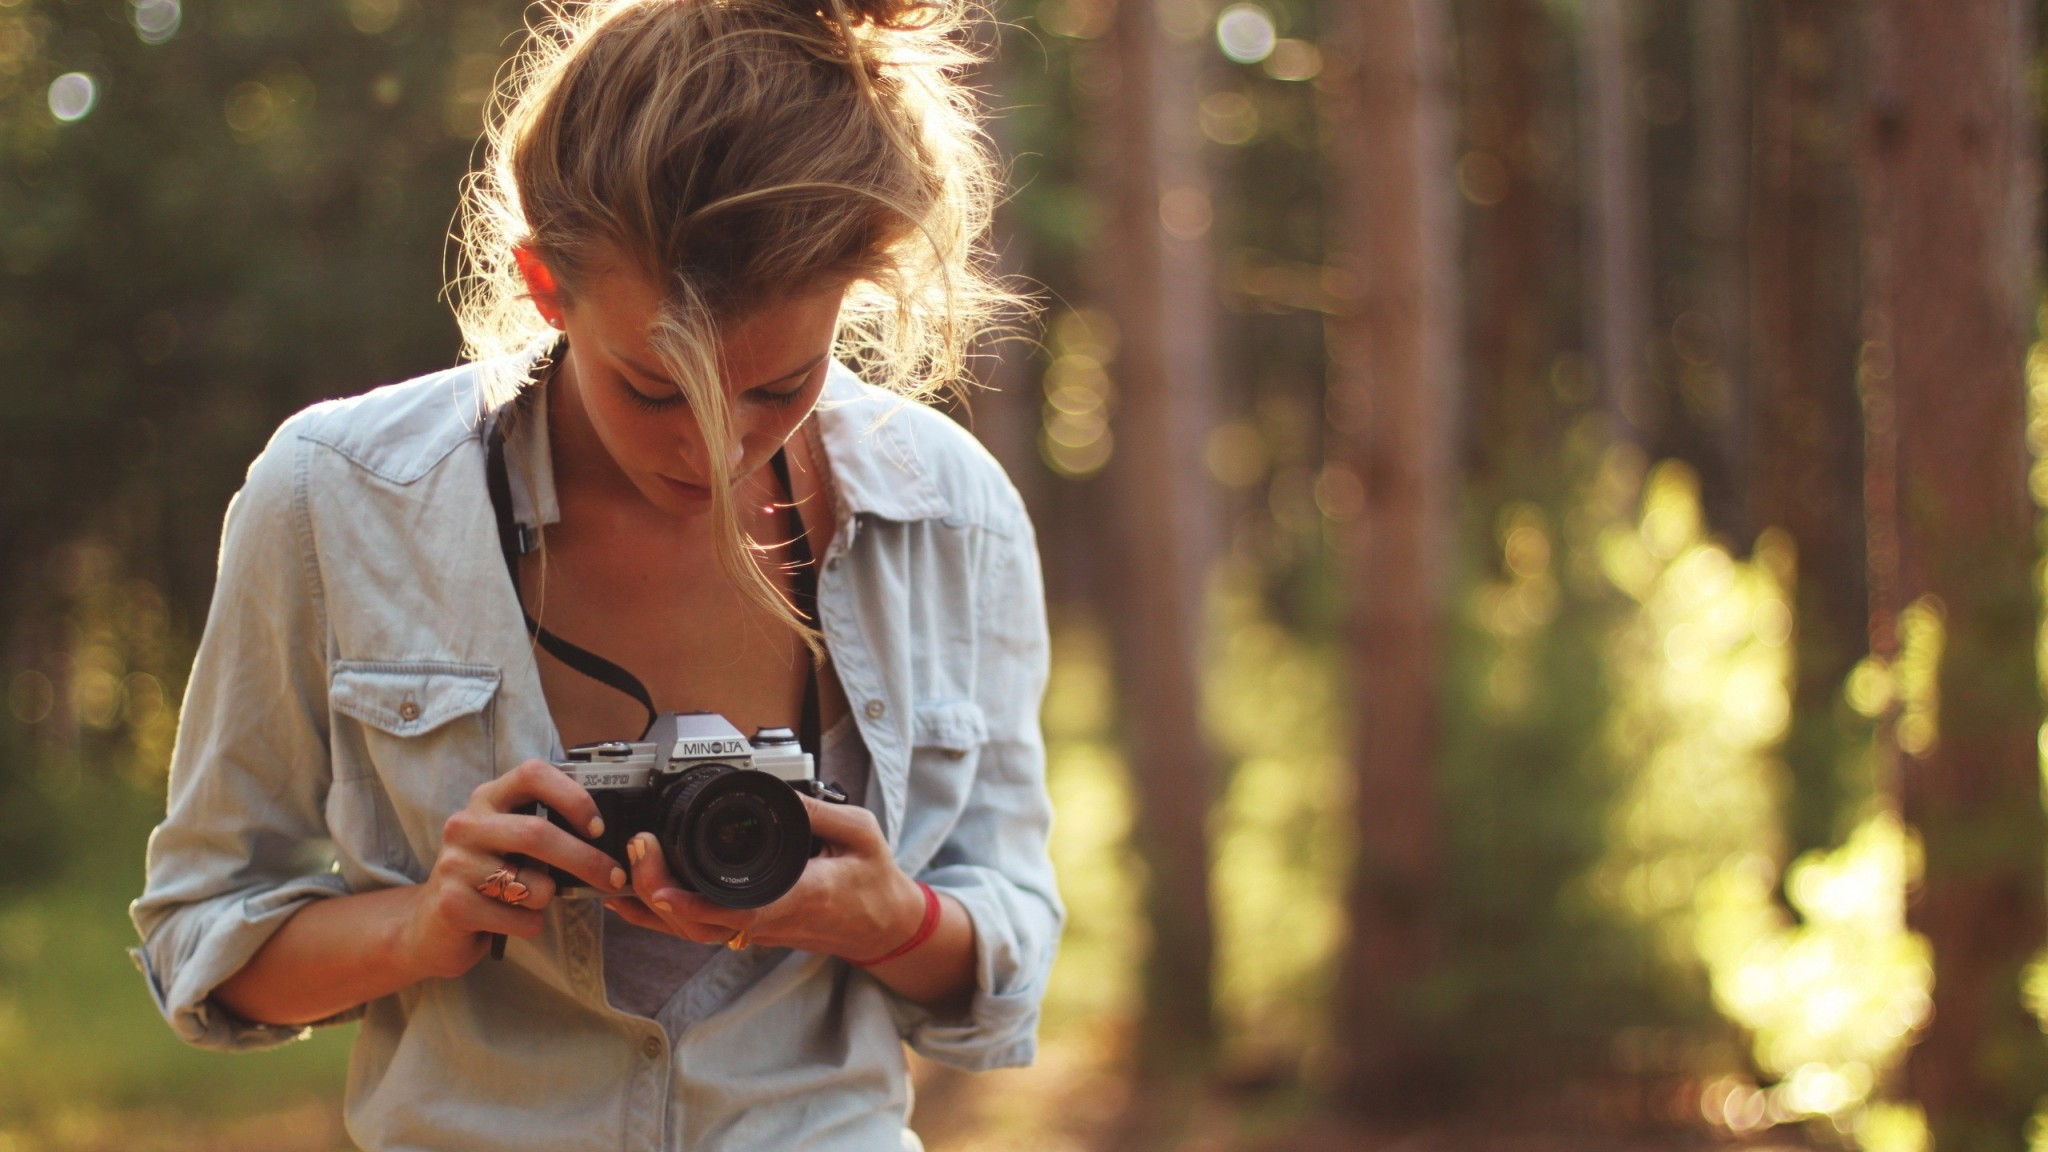 girl-taking-photos-outdoors-2048x1152-wide-wallpapers-net